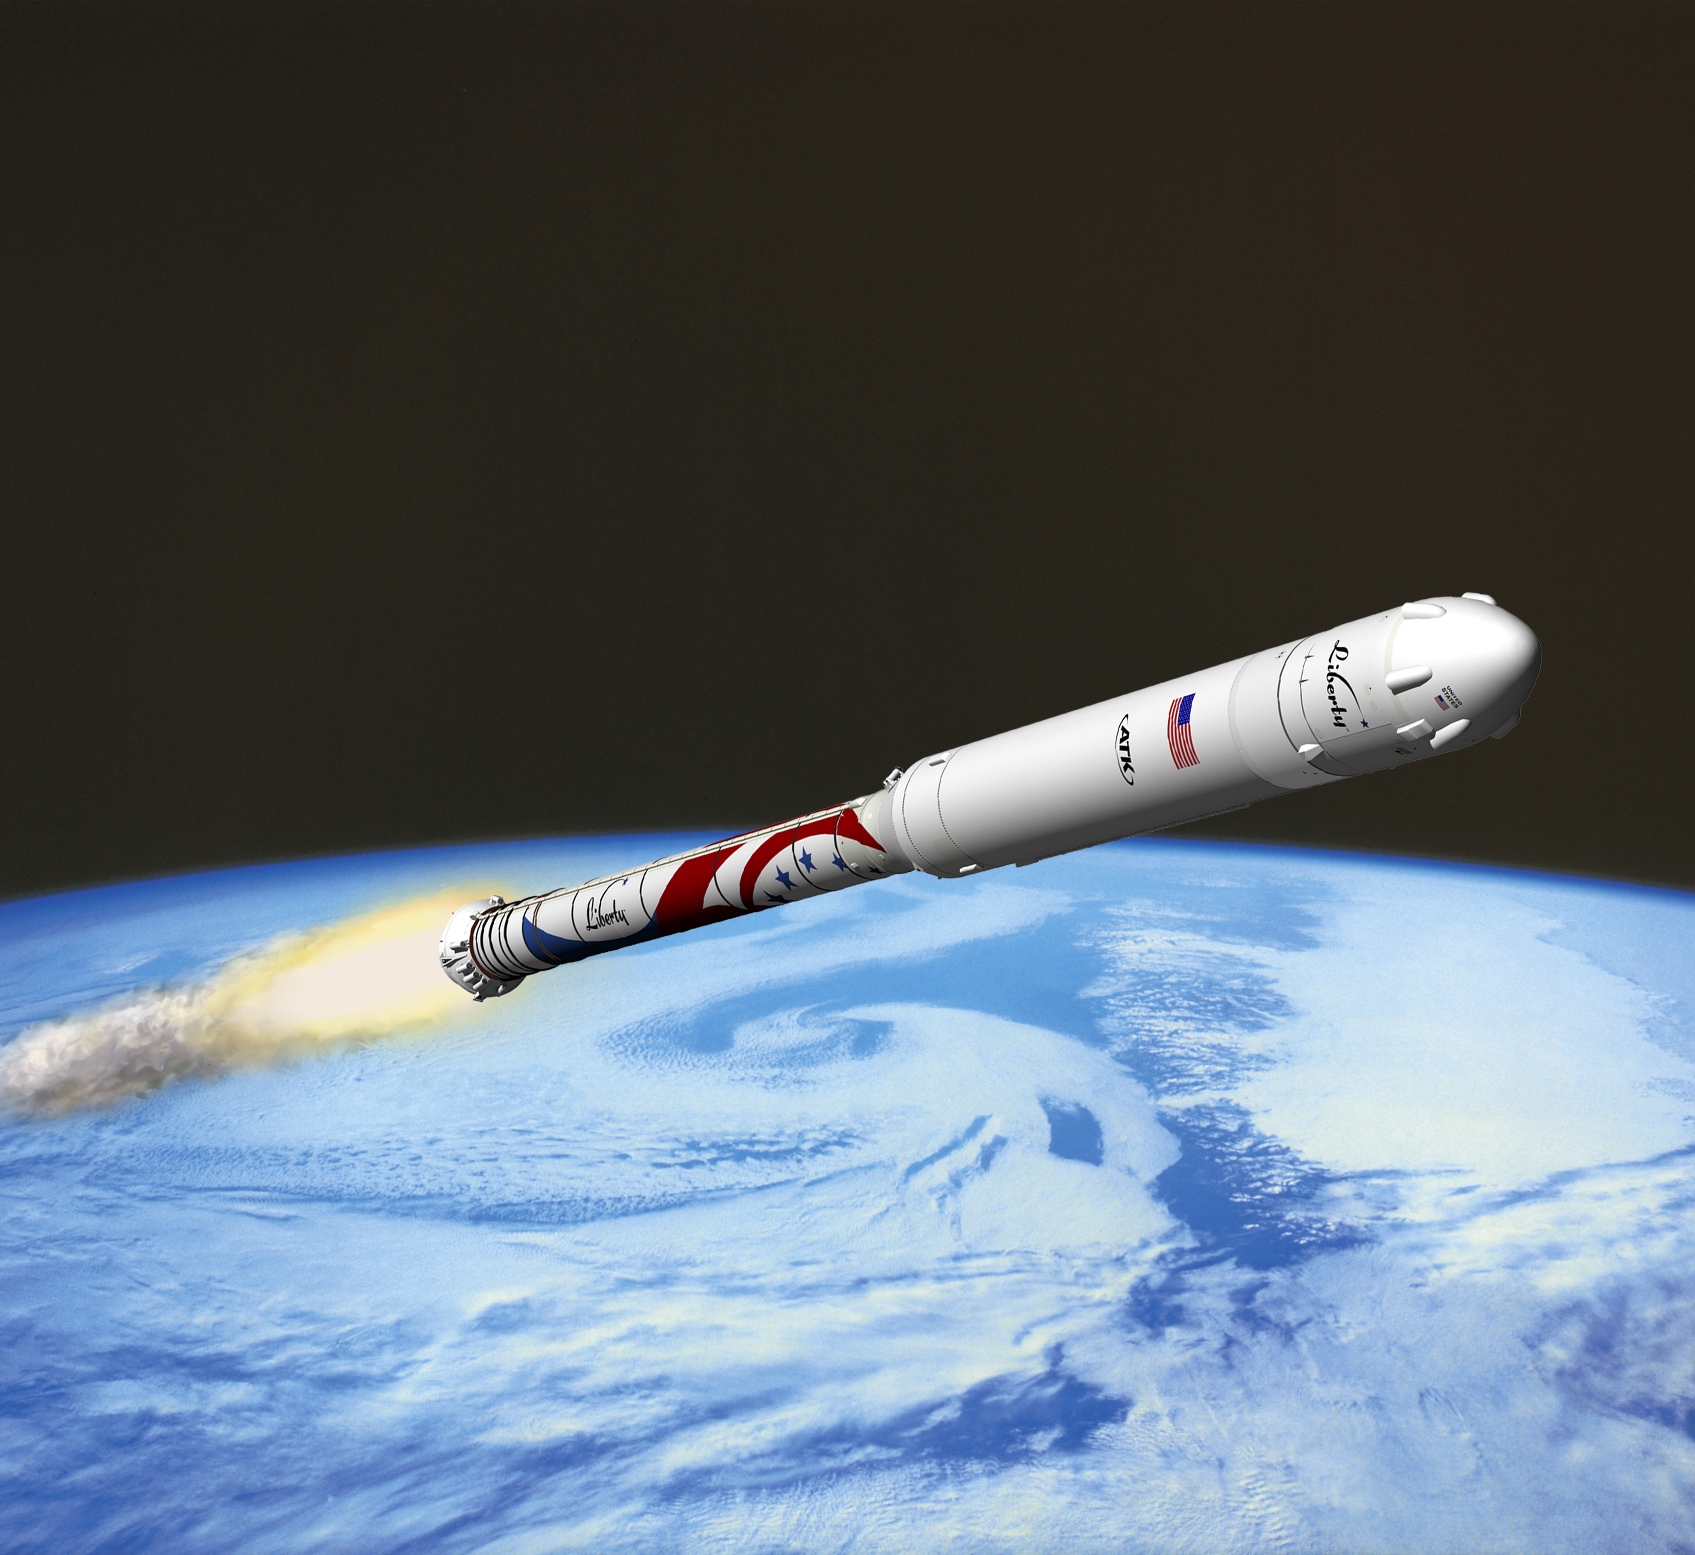 Photos: ATK's Liberty Rocket & Private Space Capsule